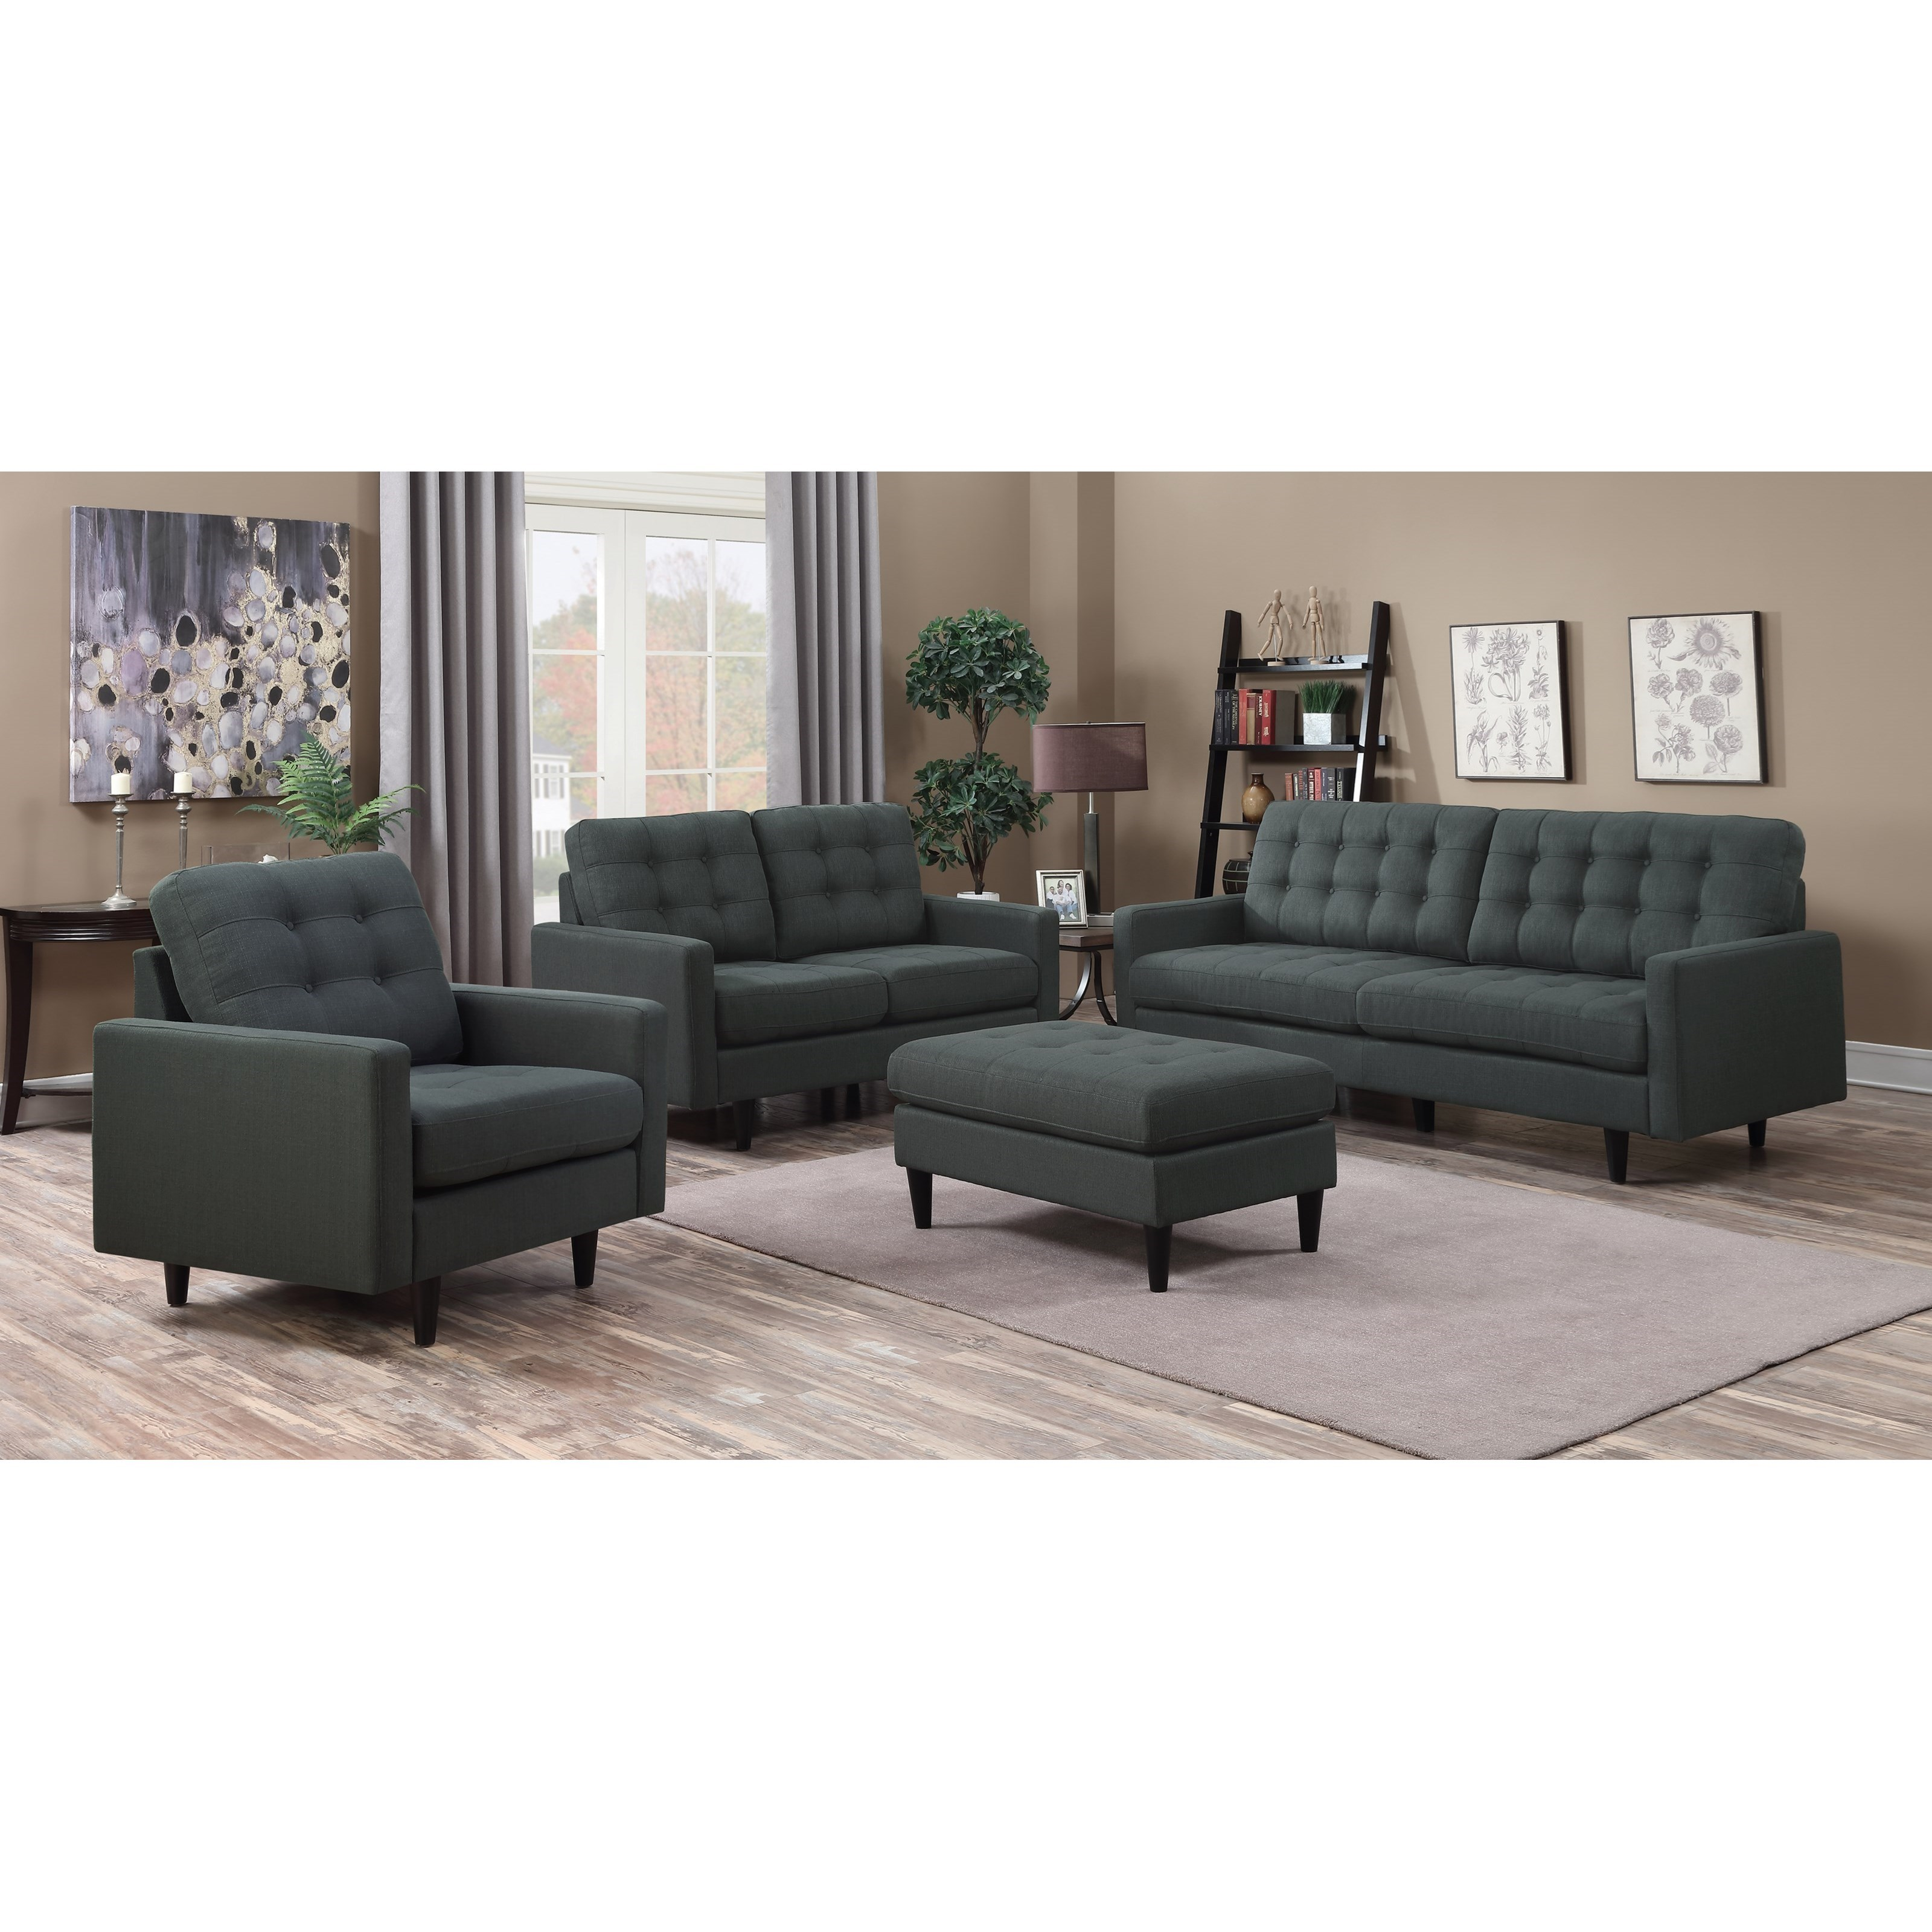 Coaster kesson stationary living room group beck 39 s for Living room furniture groups